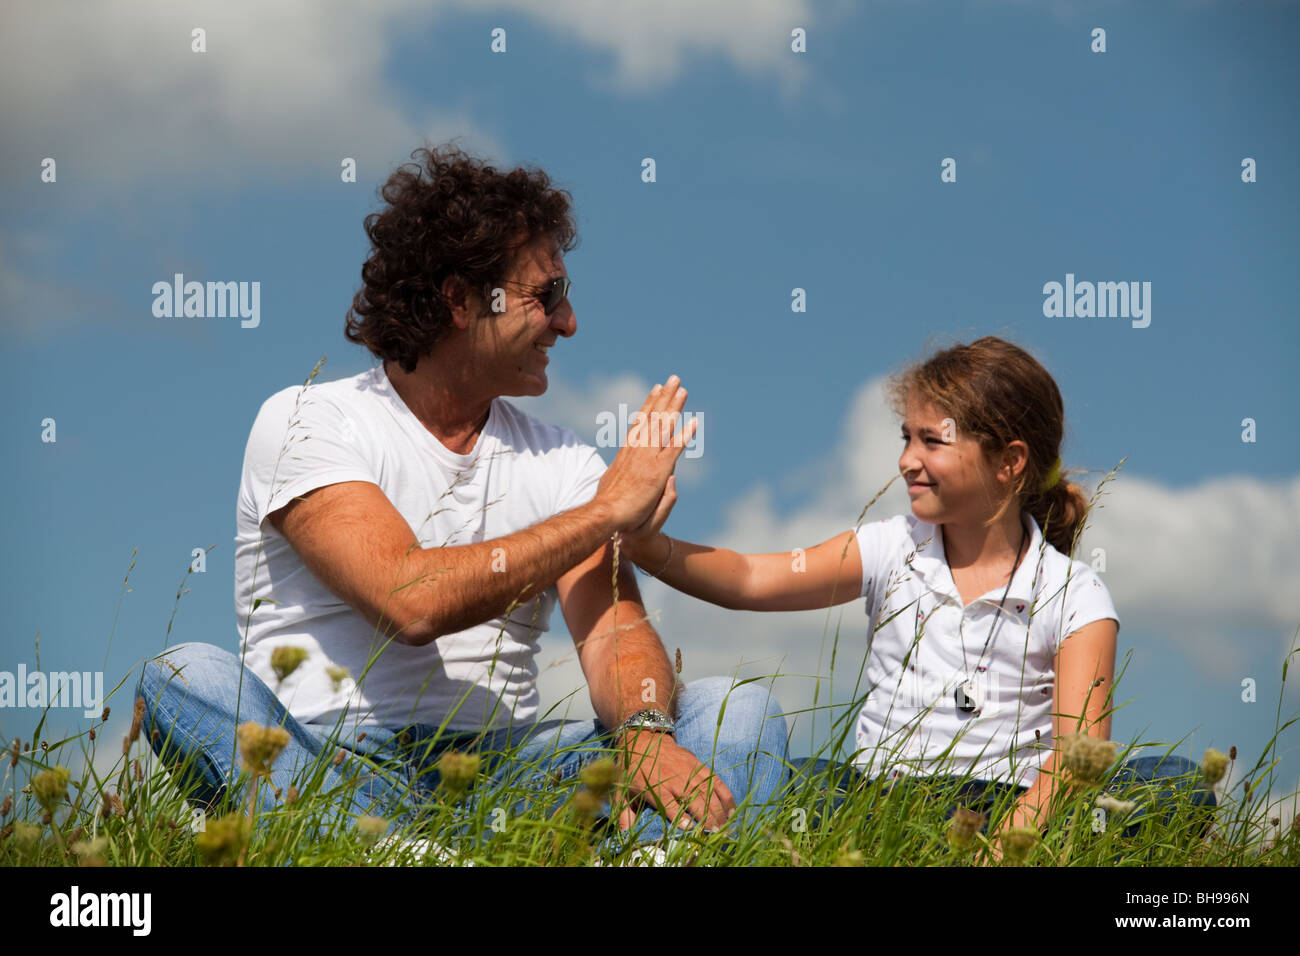 Father and daughter touching hands - Stock Image